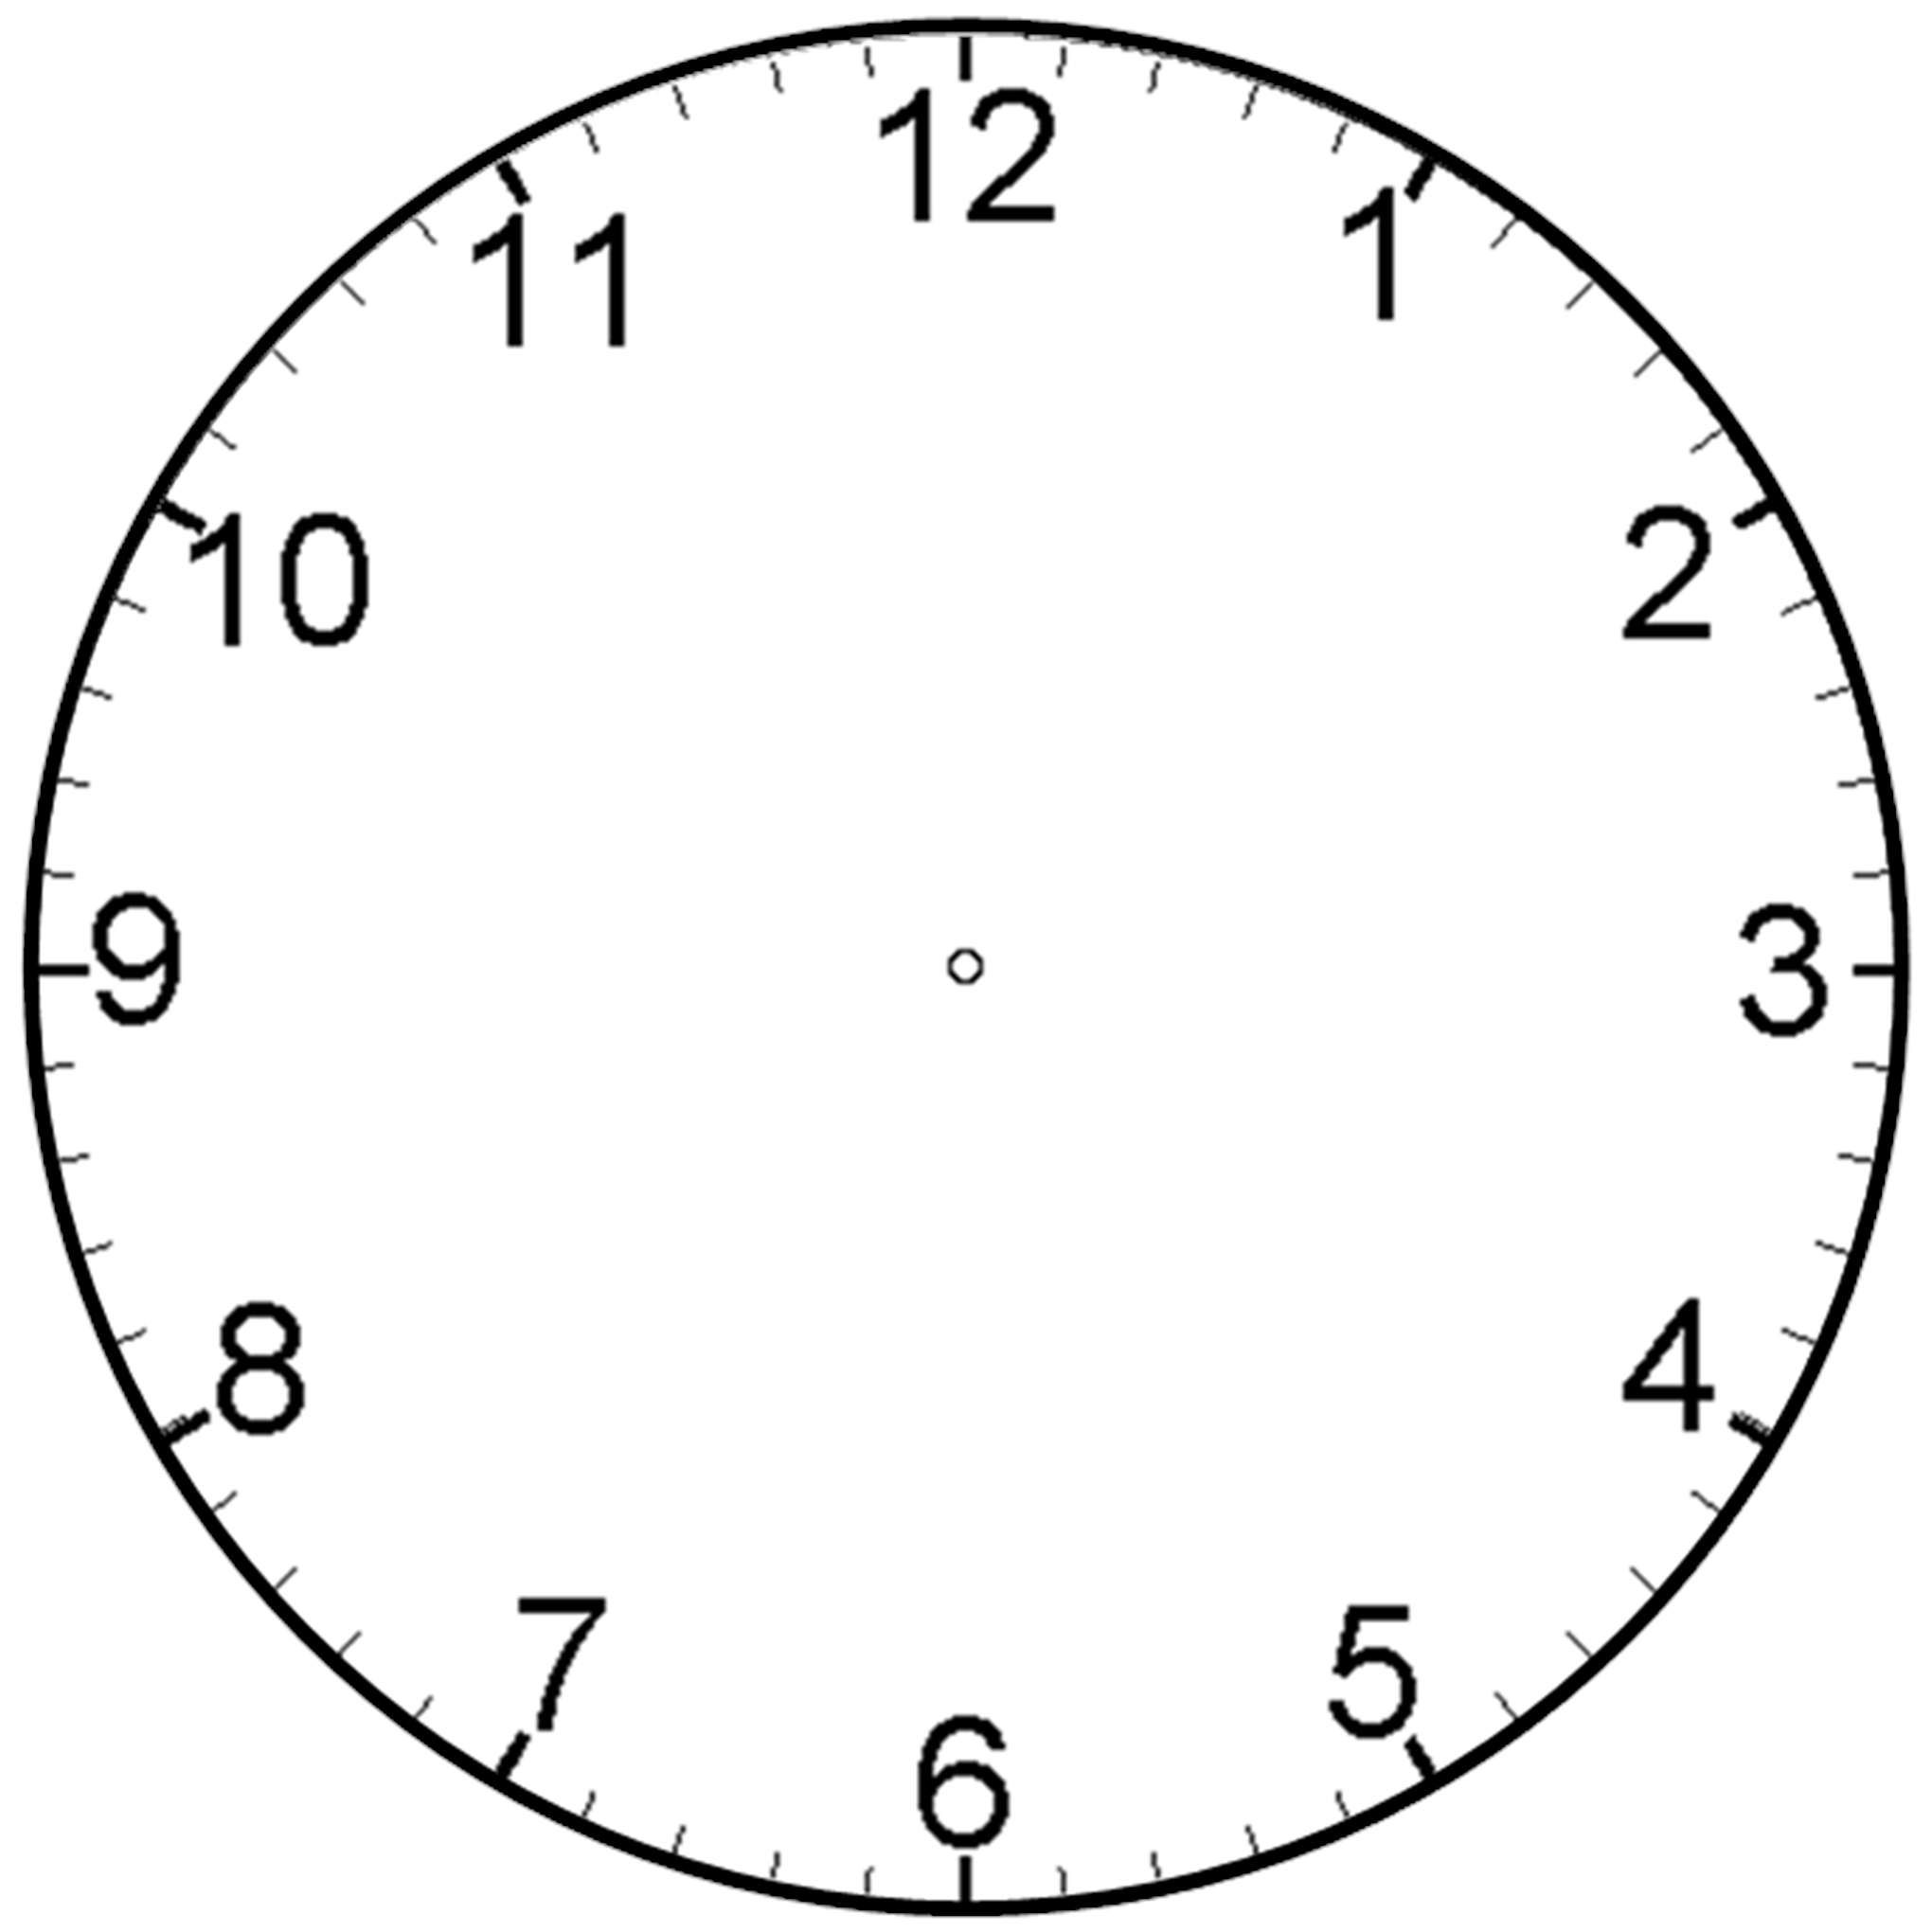 Blank clock tzeojyjc jpeg. Clocks clipart plain